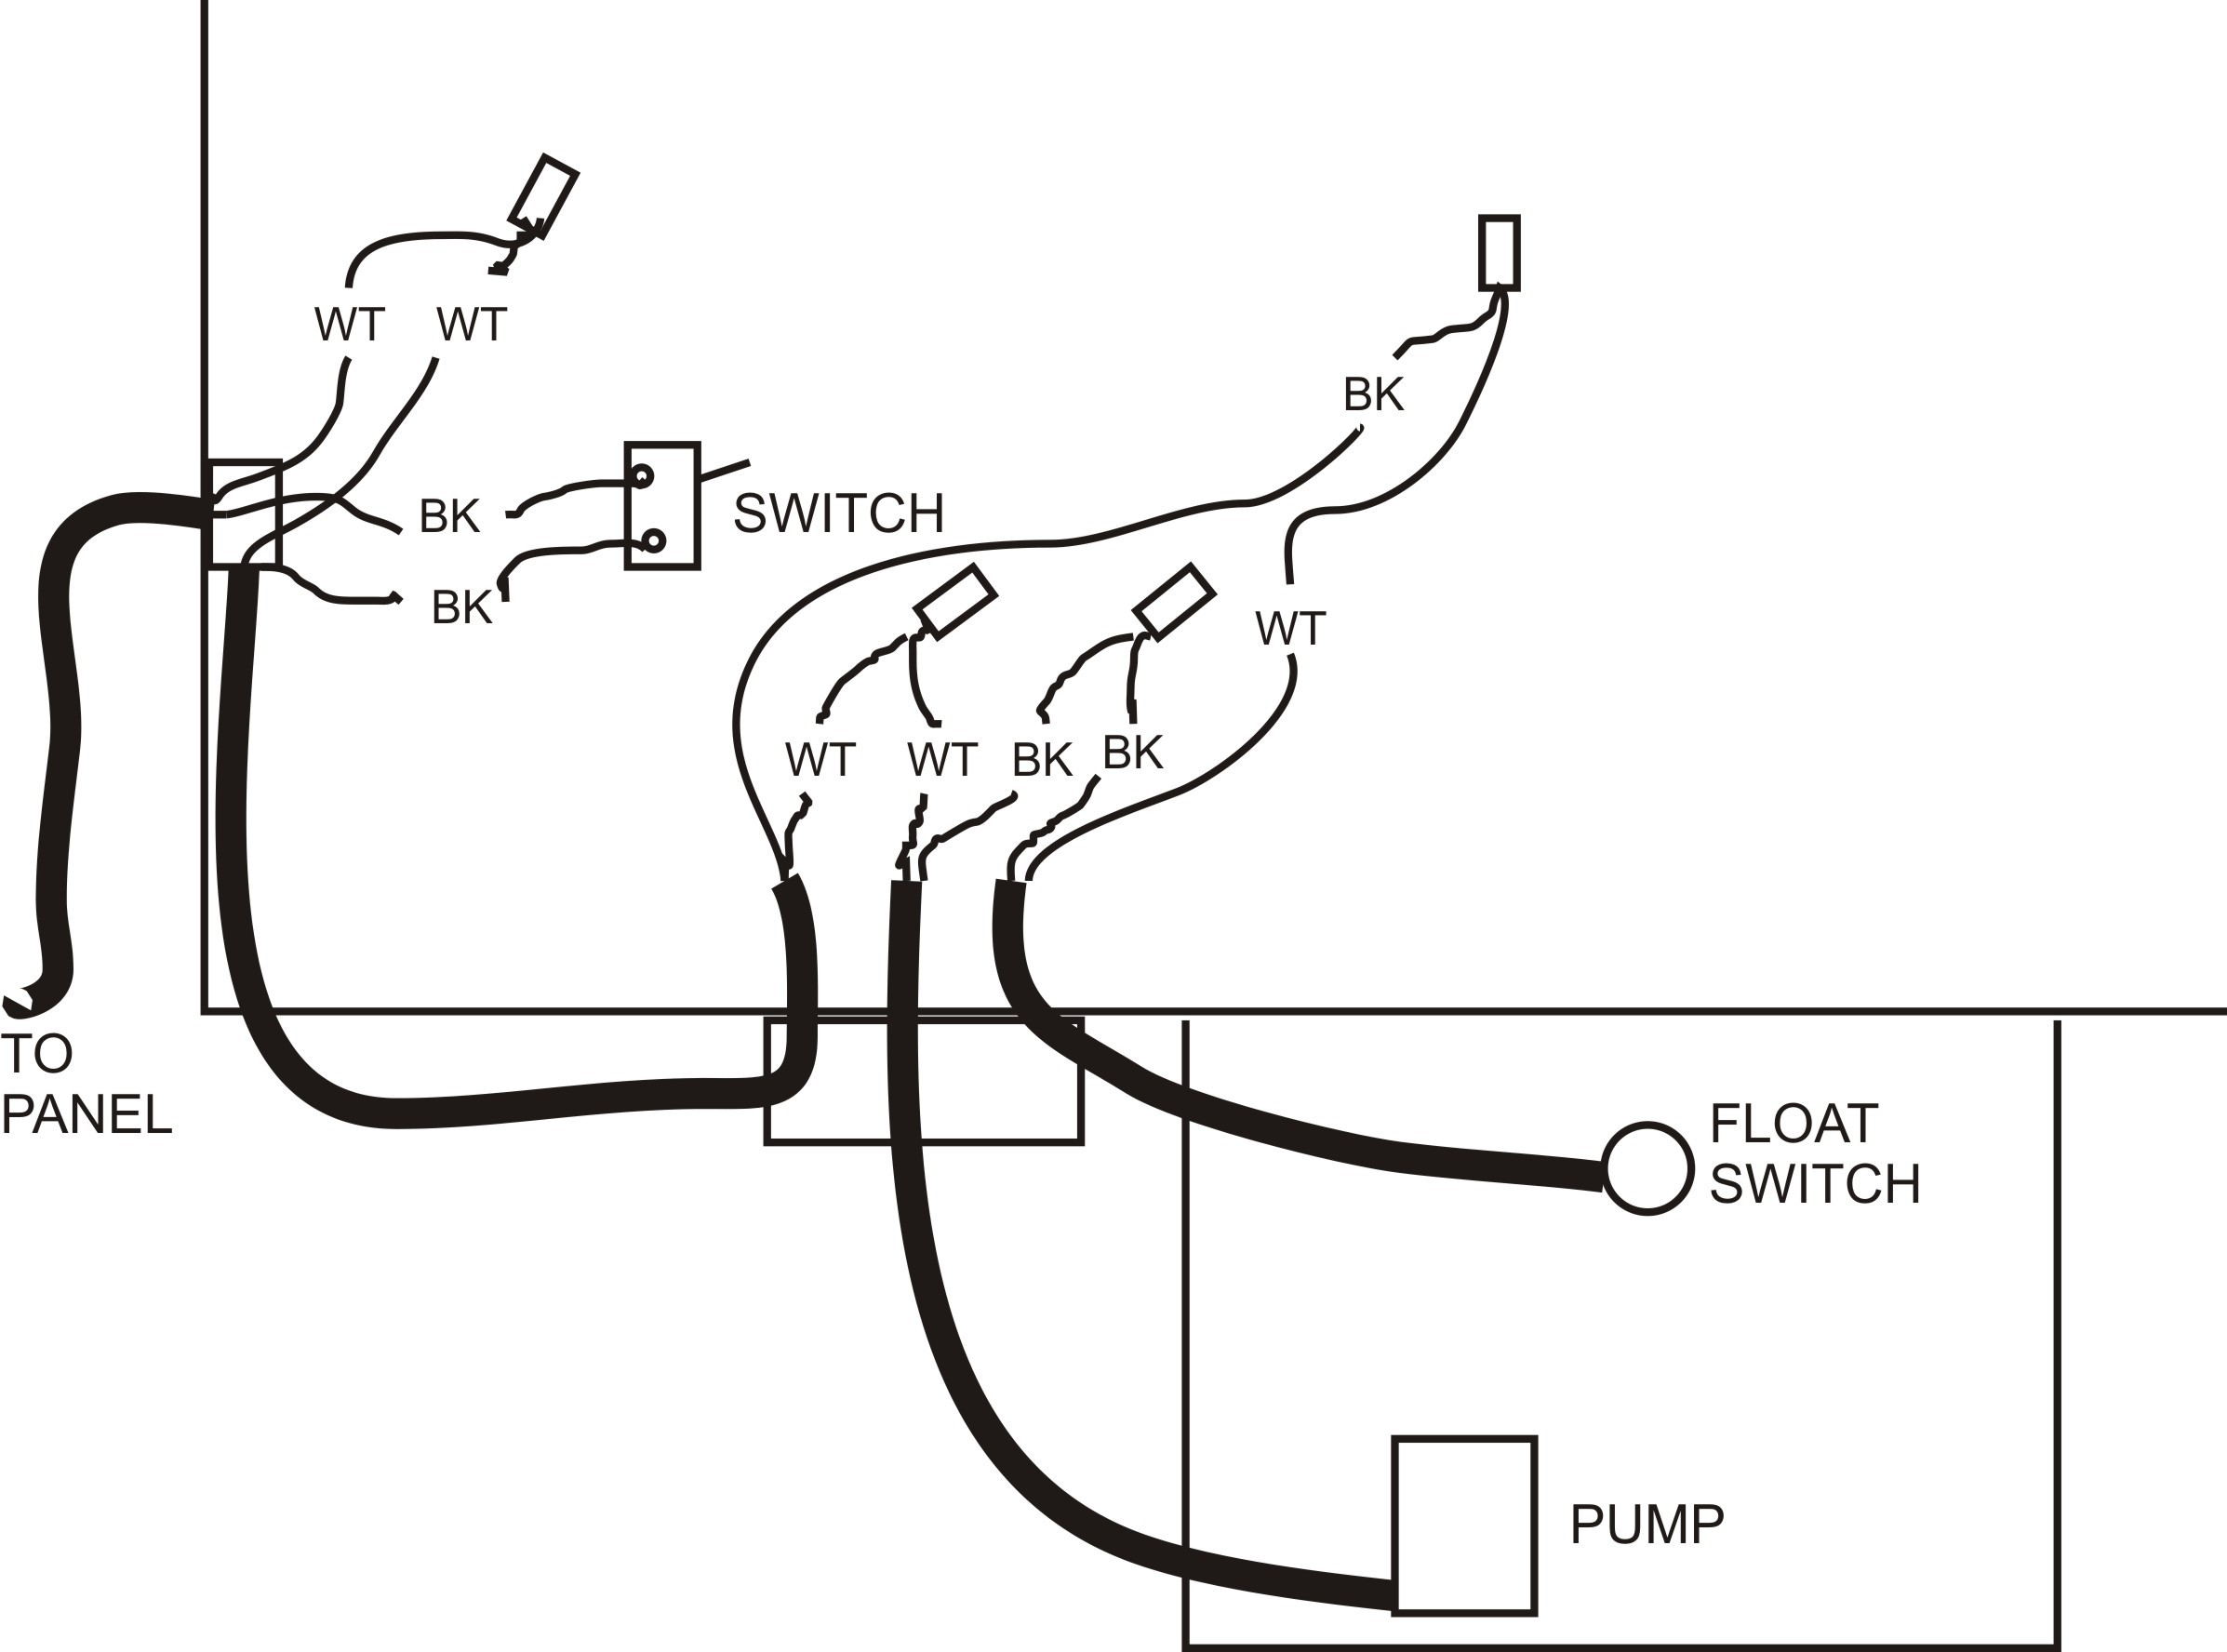 septic tank pump wiring diagram wiring schematic diagram Sewage Pits in Basement septic tank pump wiring wiring diagrams hubs propane tank pump wiring diagram sewage pump wiring for